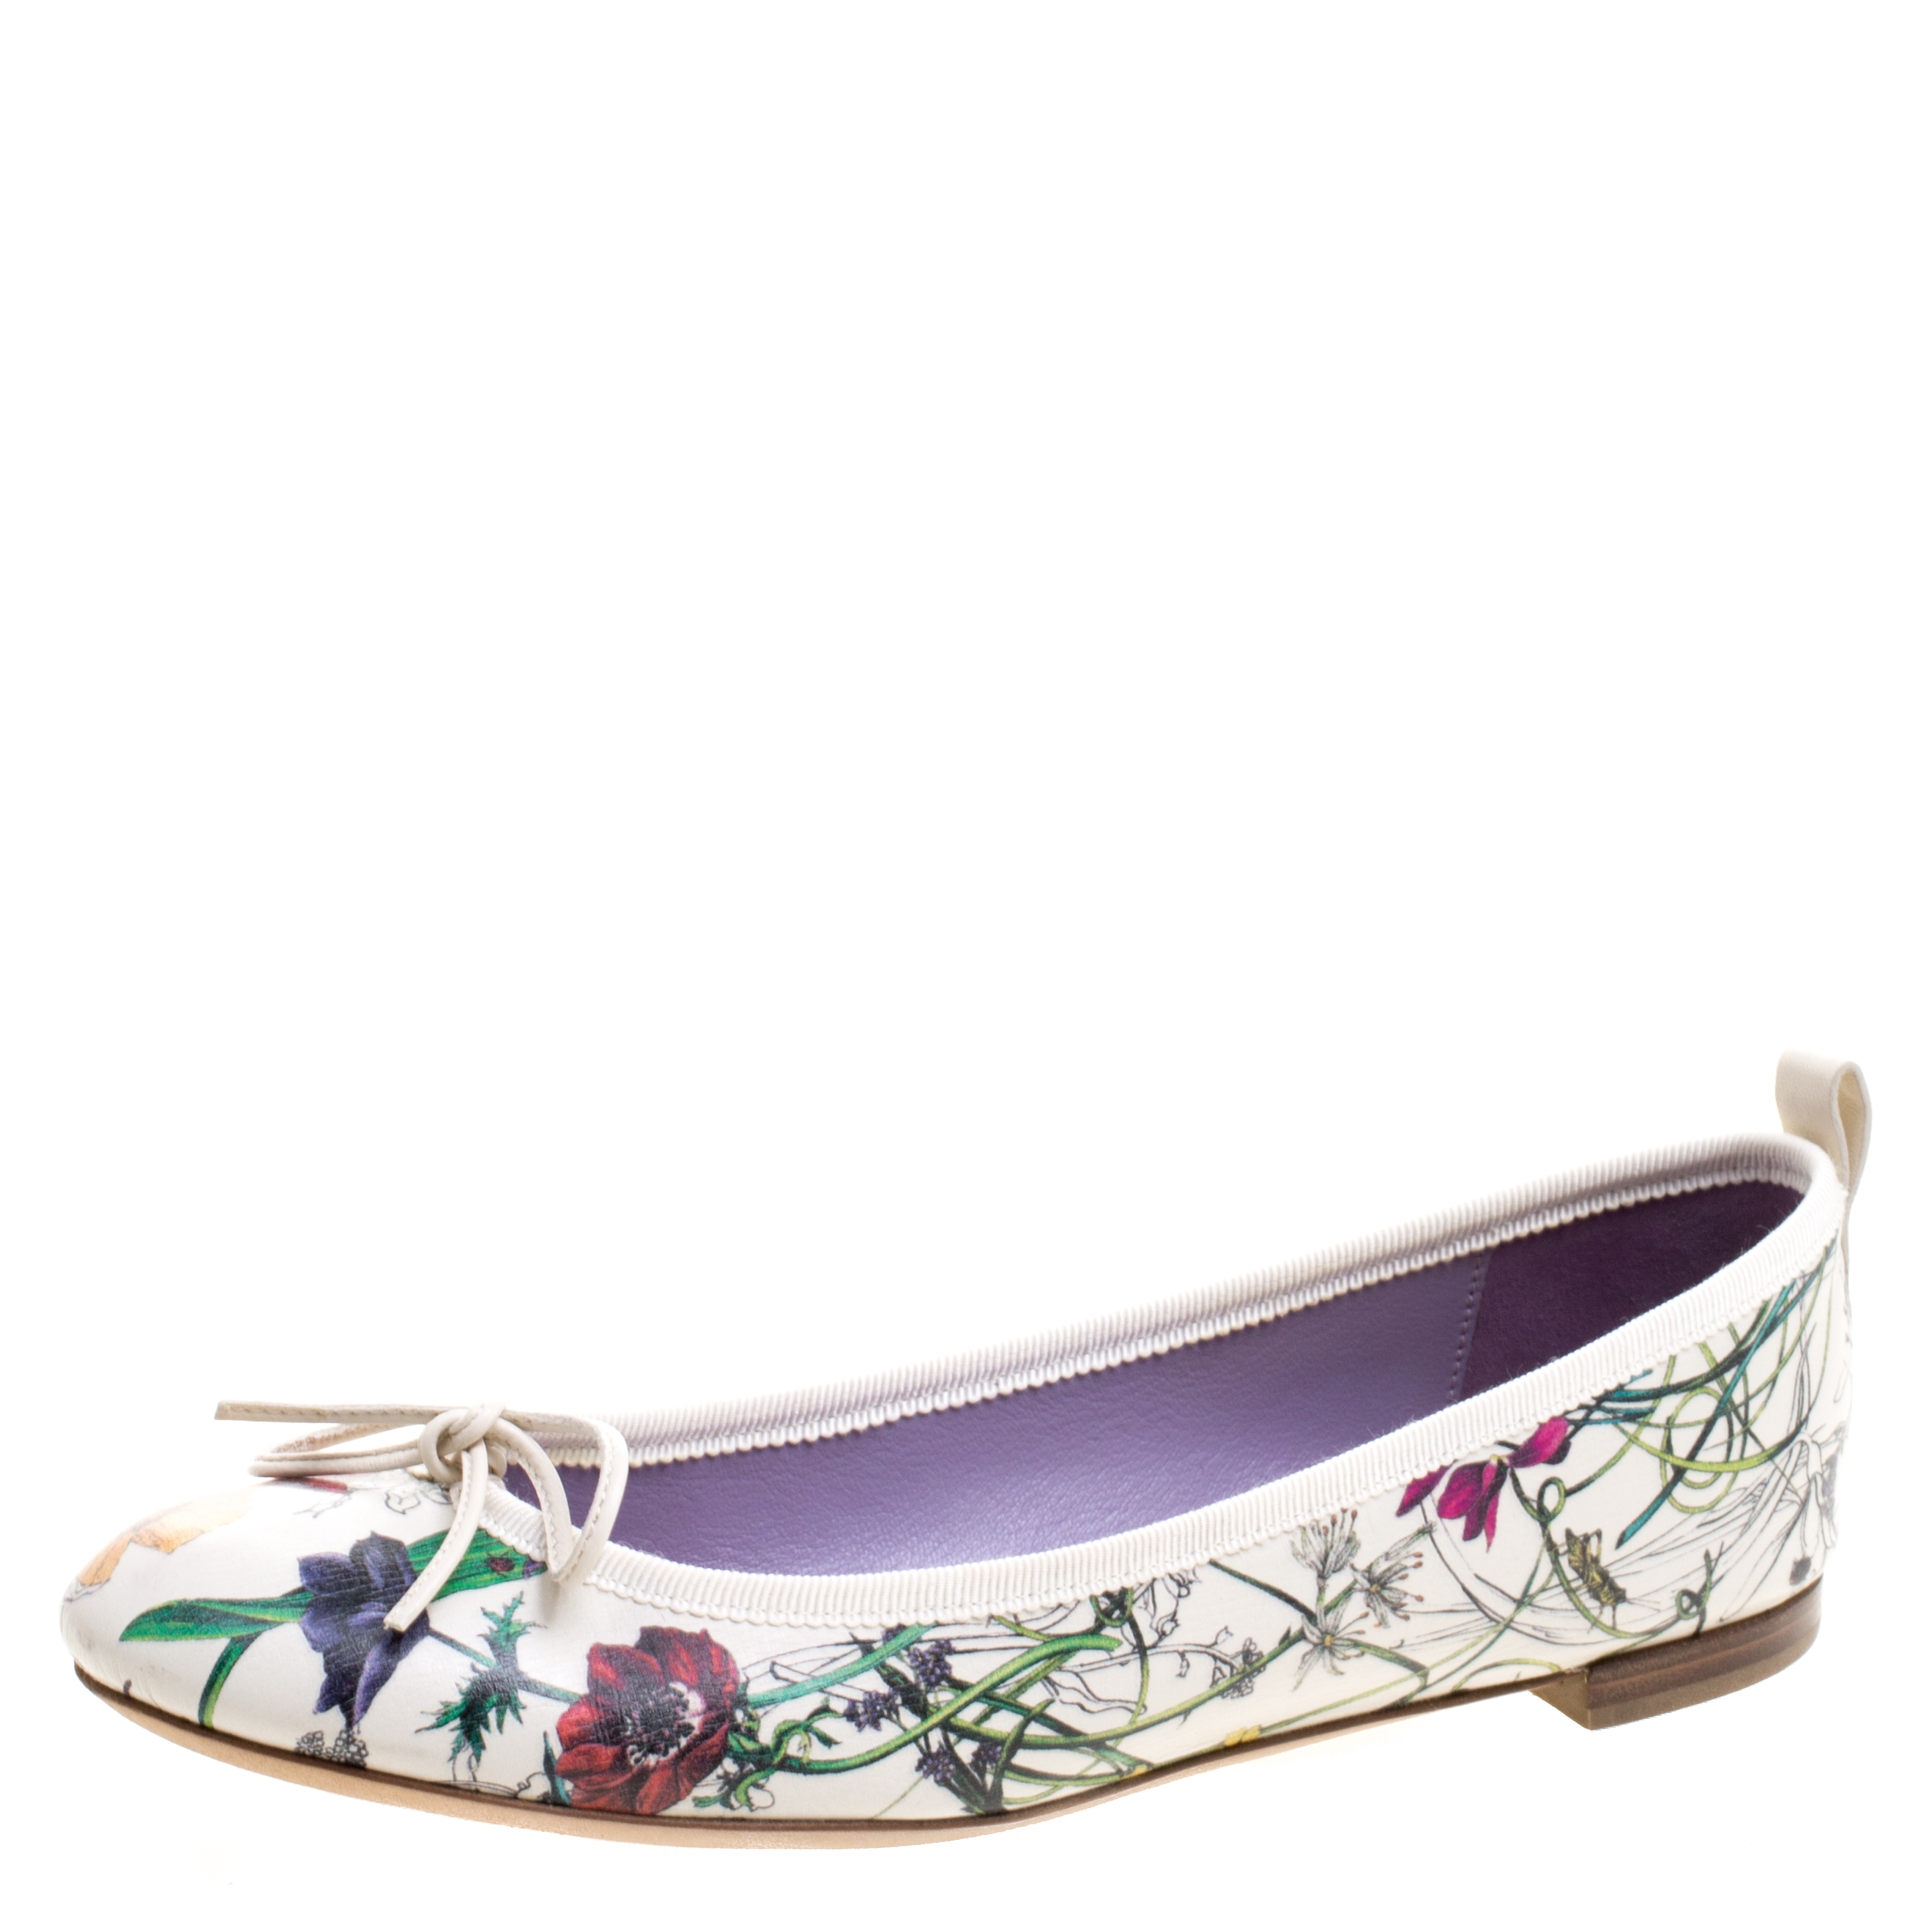 24f8a8011b3 Buy Gucci White Floral Printed Leather Ali Flora Ballet Flats Size ...